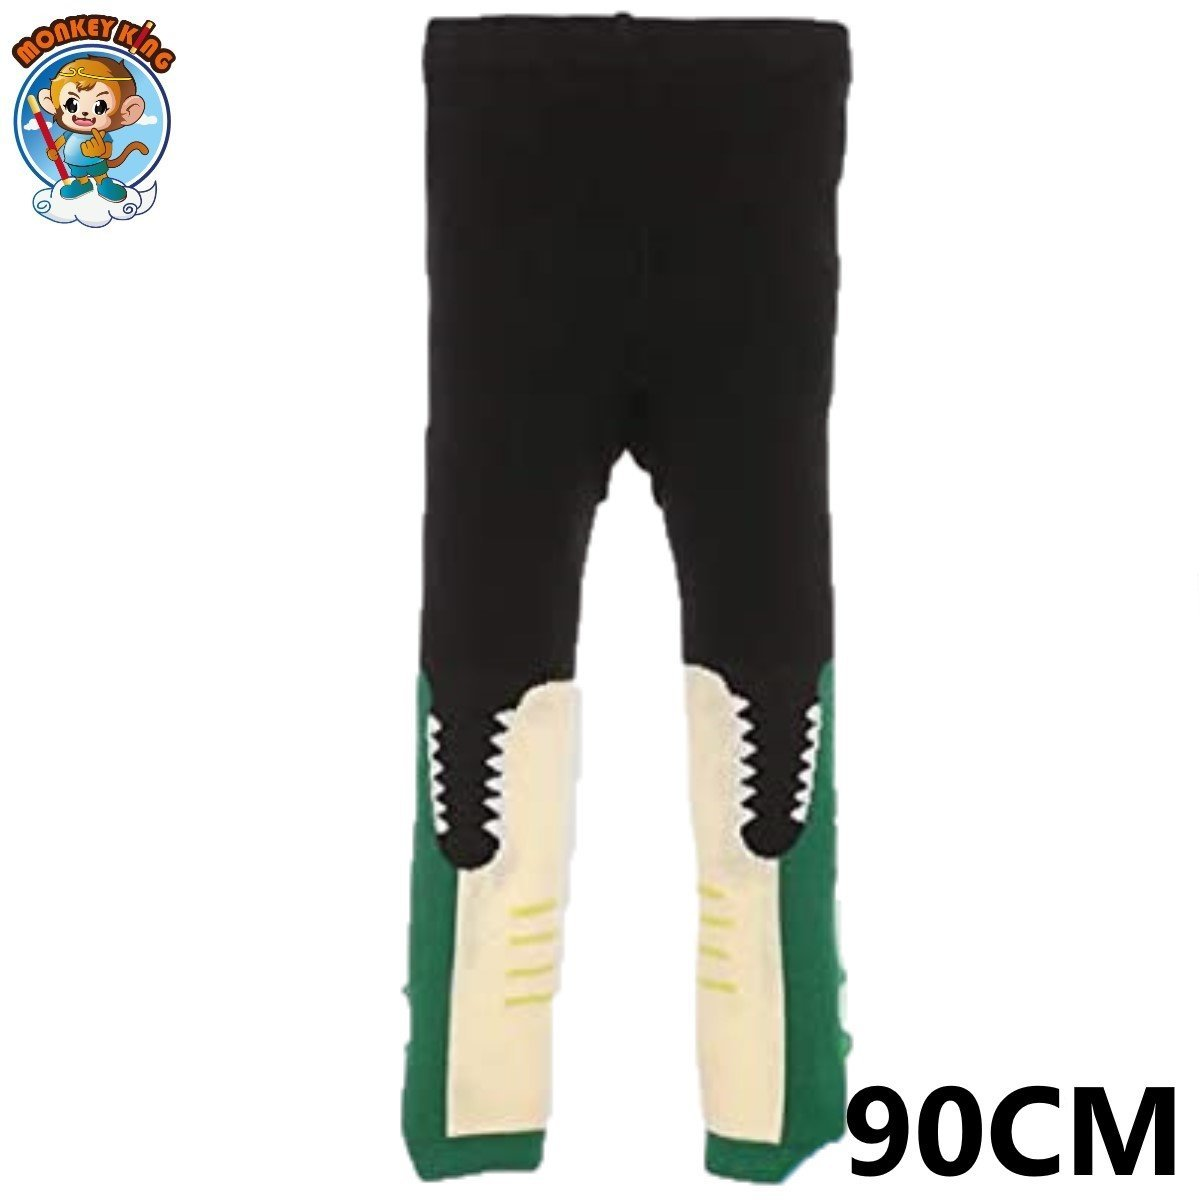 Kid's Animal Leggings (90CM) - Cute Crocodile